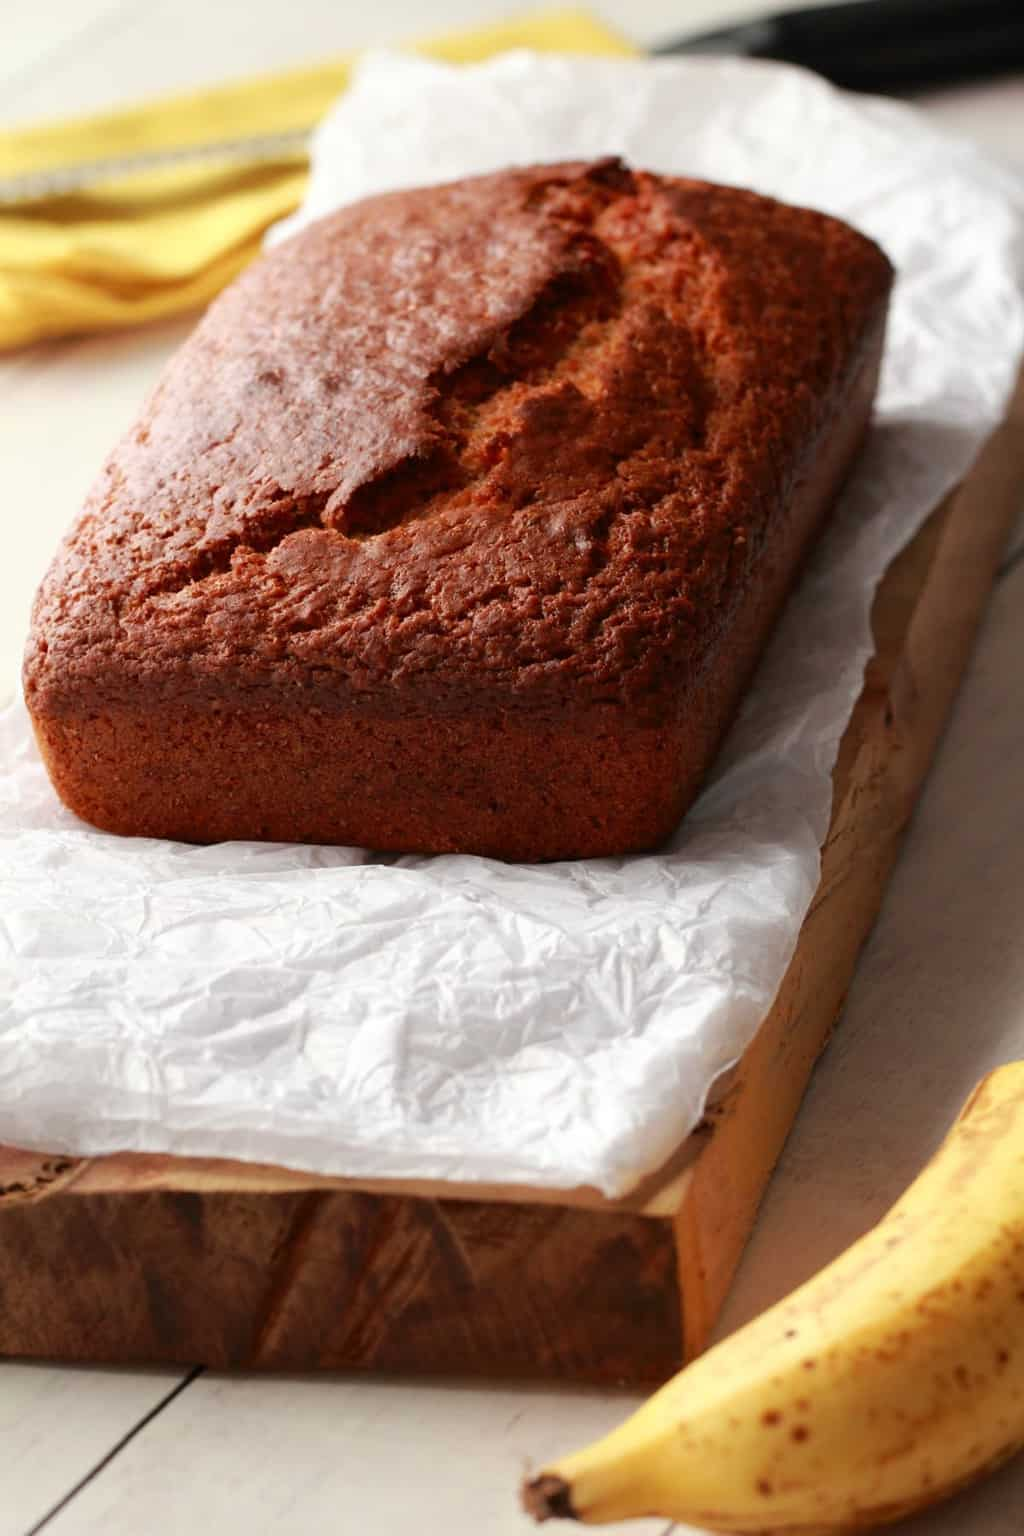 Vegan Banana Bread on parchment paper, a yellow napkin in the background.